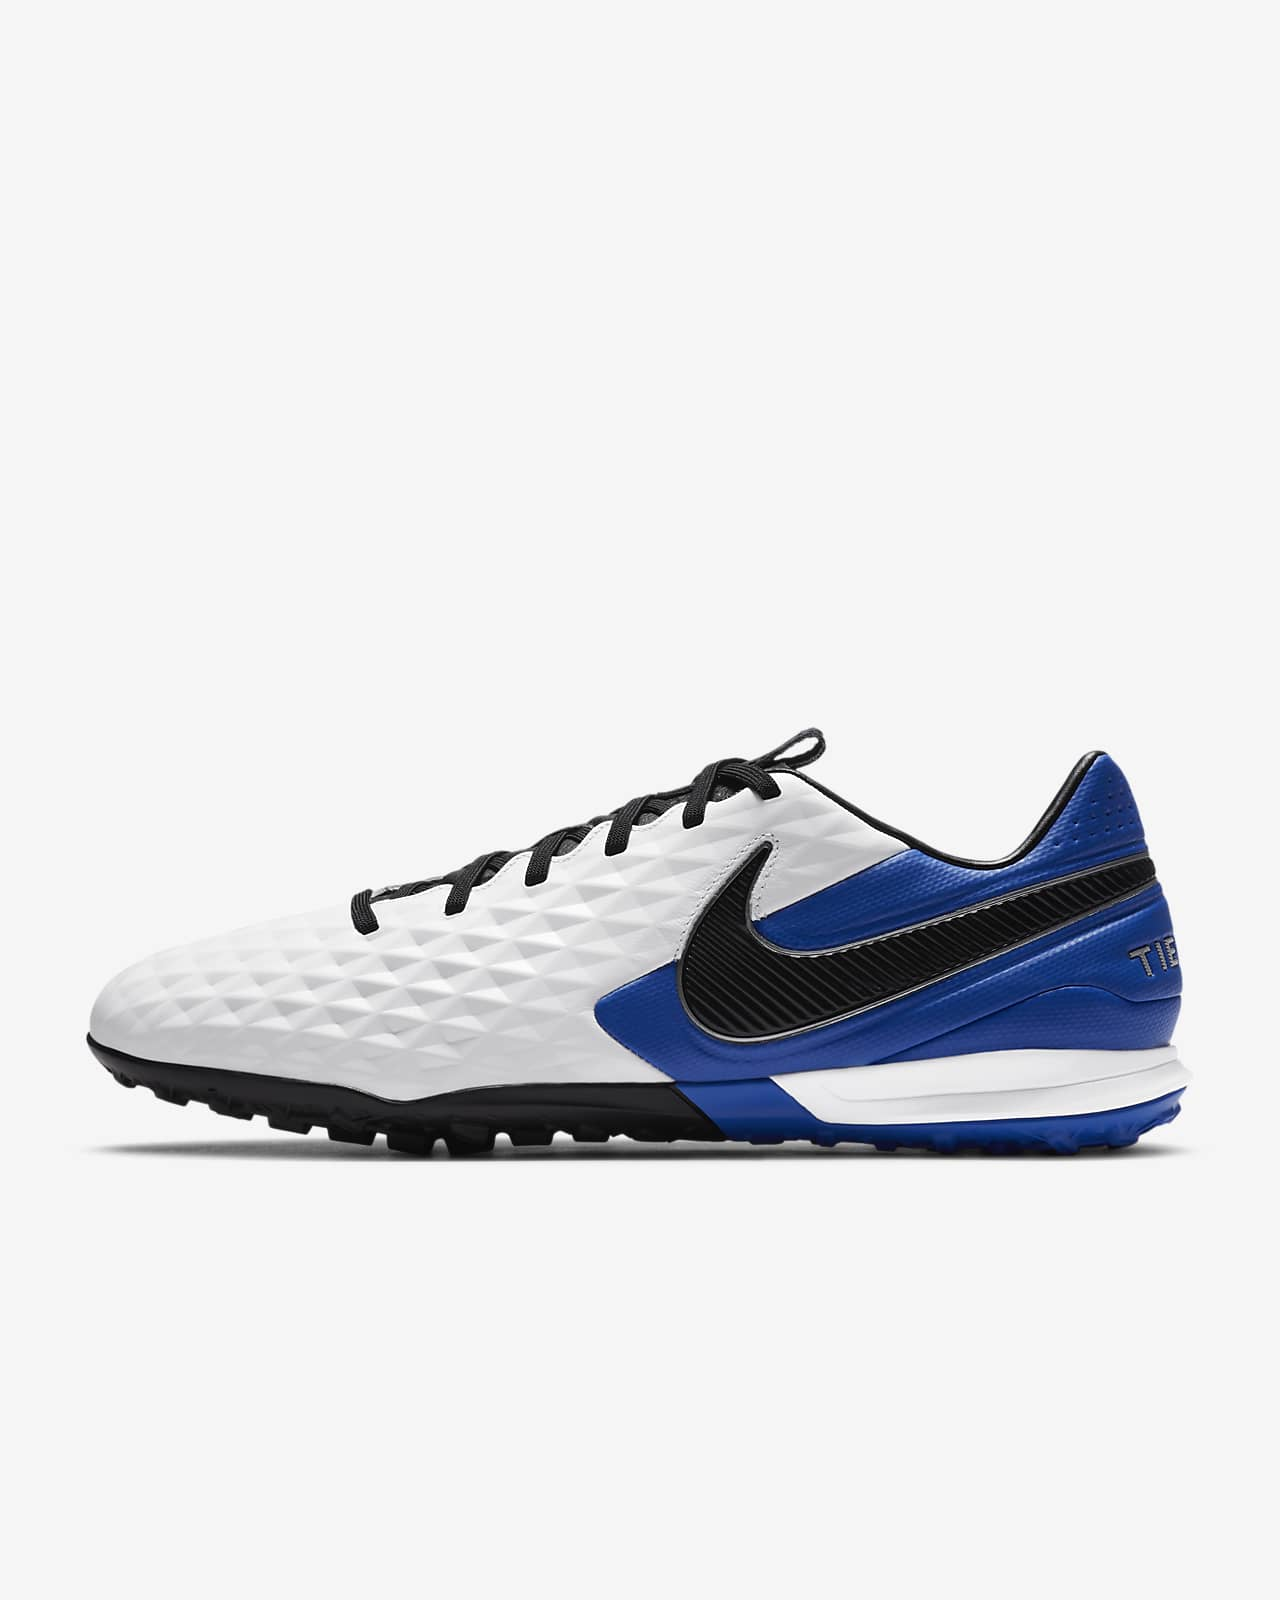 Montaña Kilauea cortar calcular  Nike Tiempo Legend 8 Pro TF Artificial-Turf Football Shoe. Nike GB